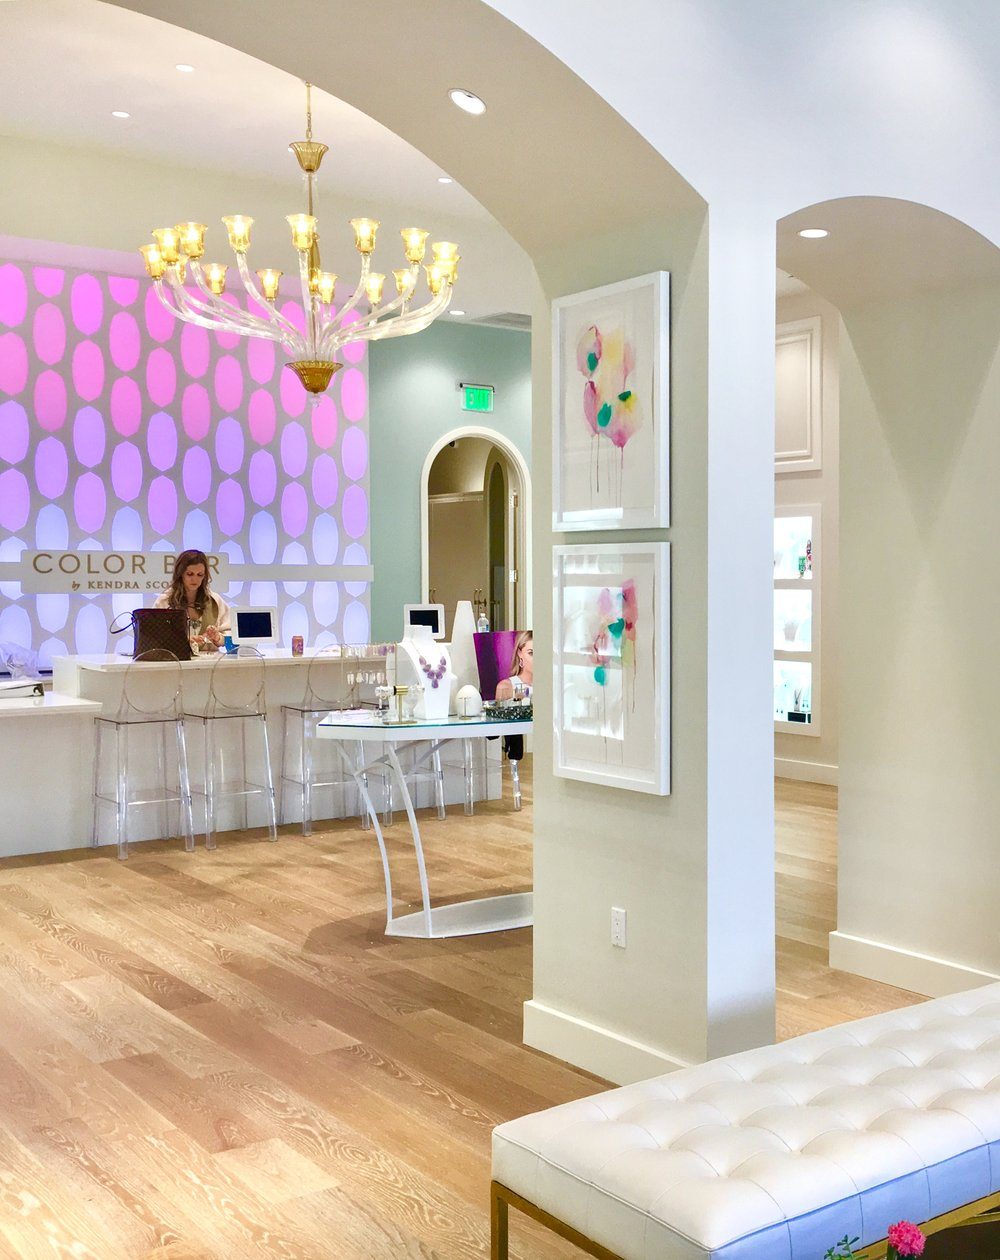 Kendra Scott Manhattan Beach, CA